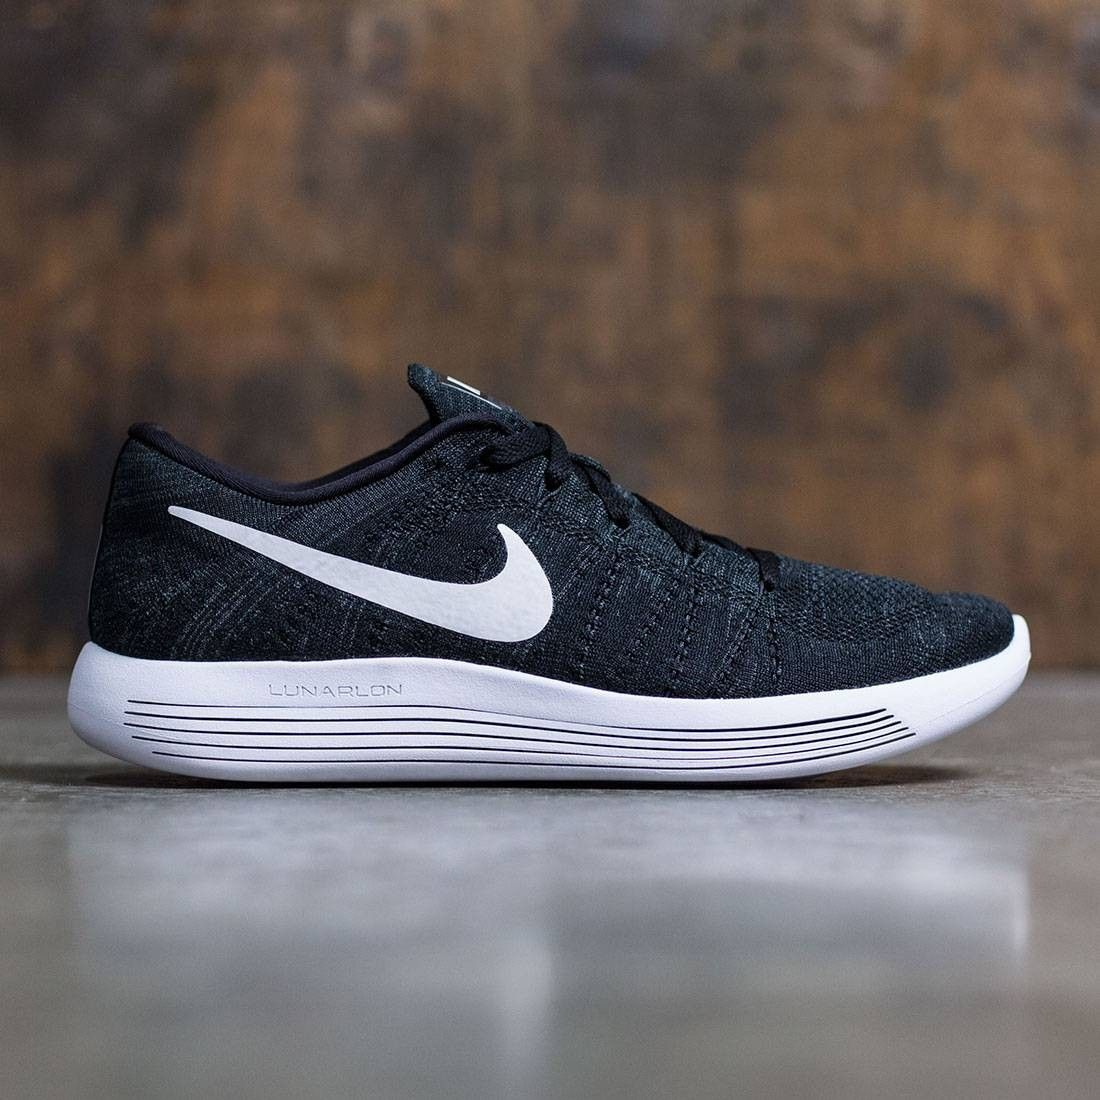 6a6f9a0153ca8 Nike Men Lunarepic Low Flyknit Running (black   white-anthracite) in ...